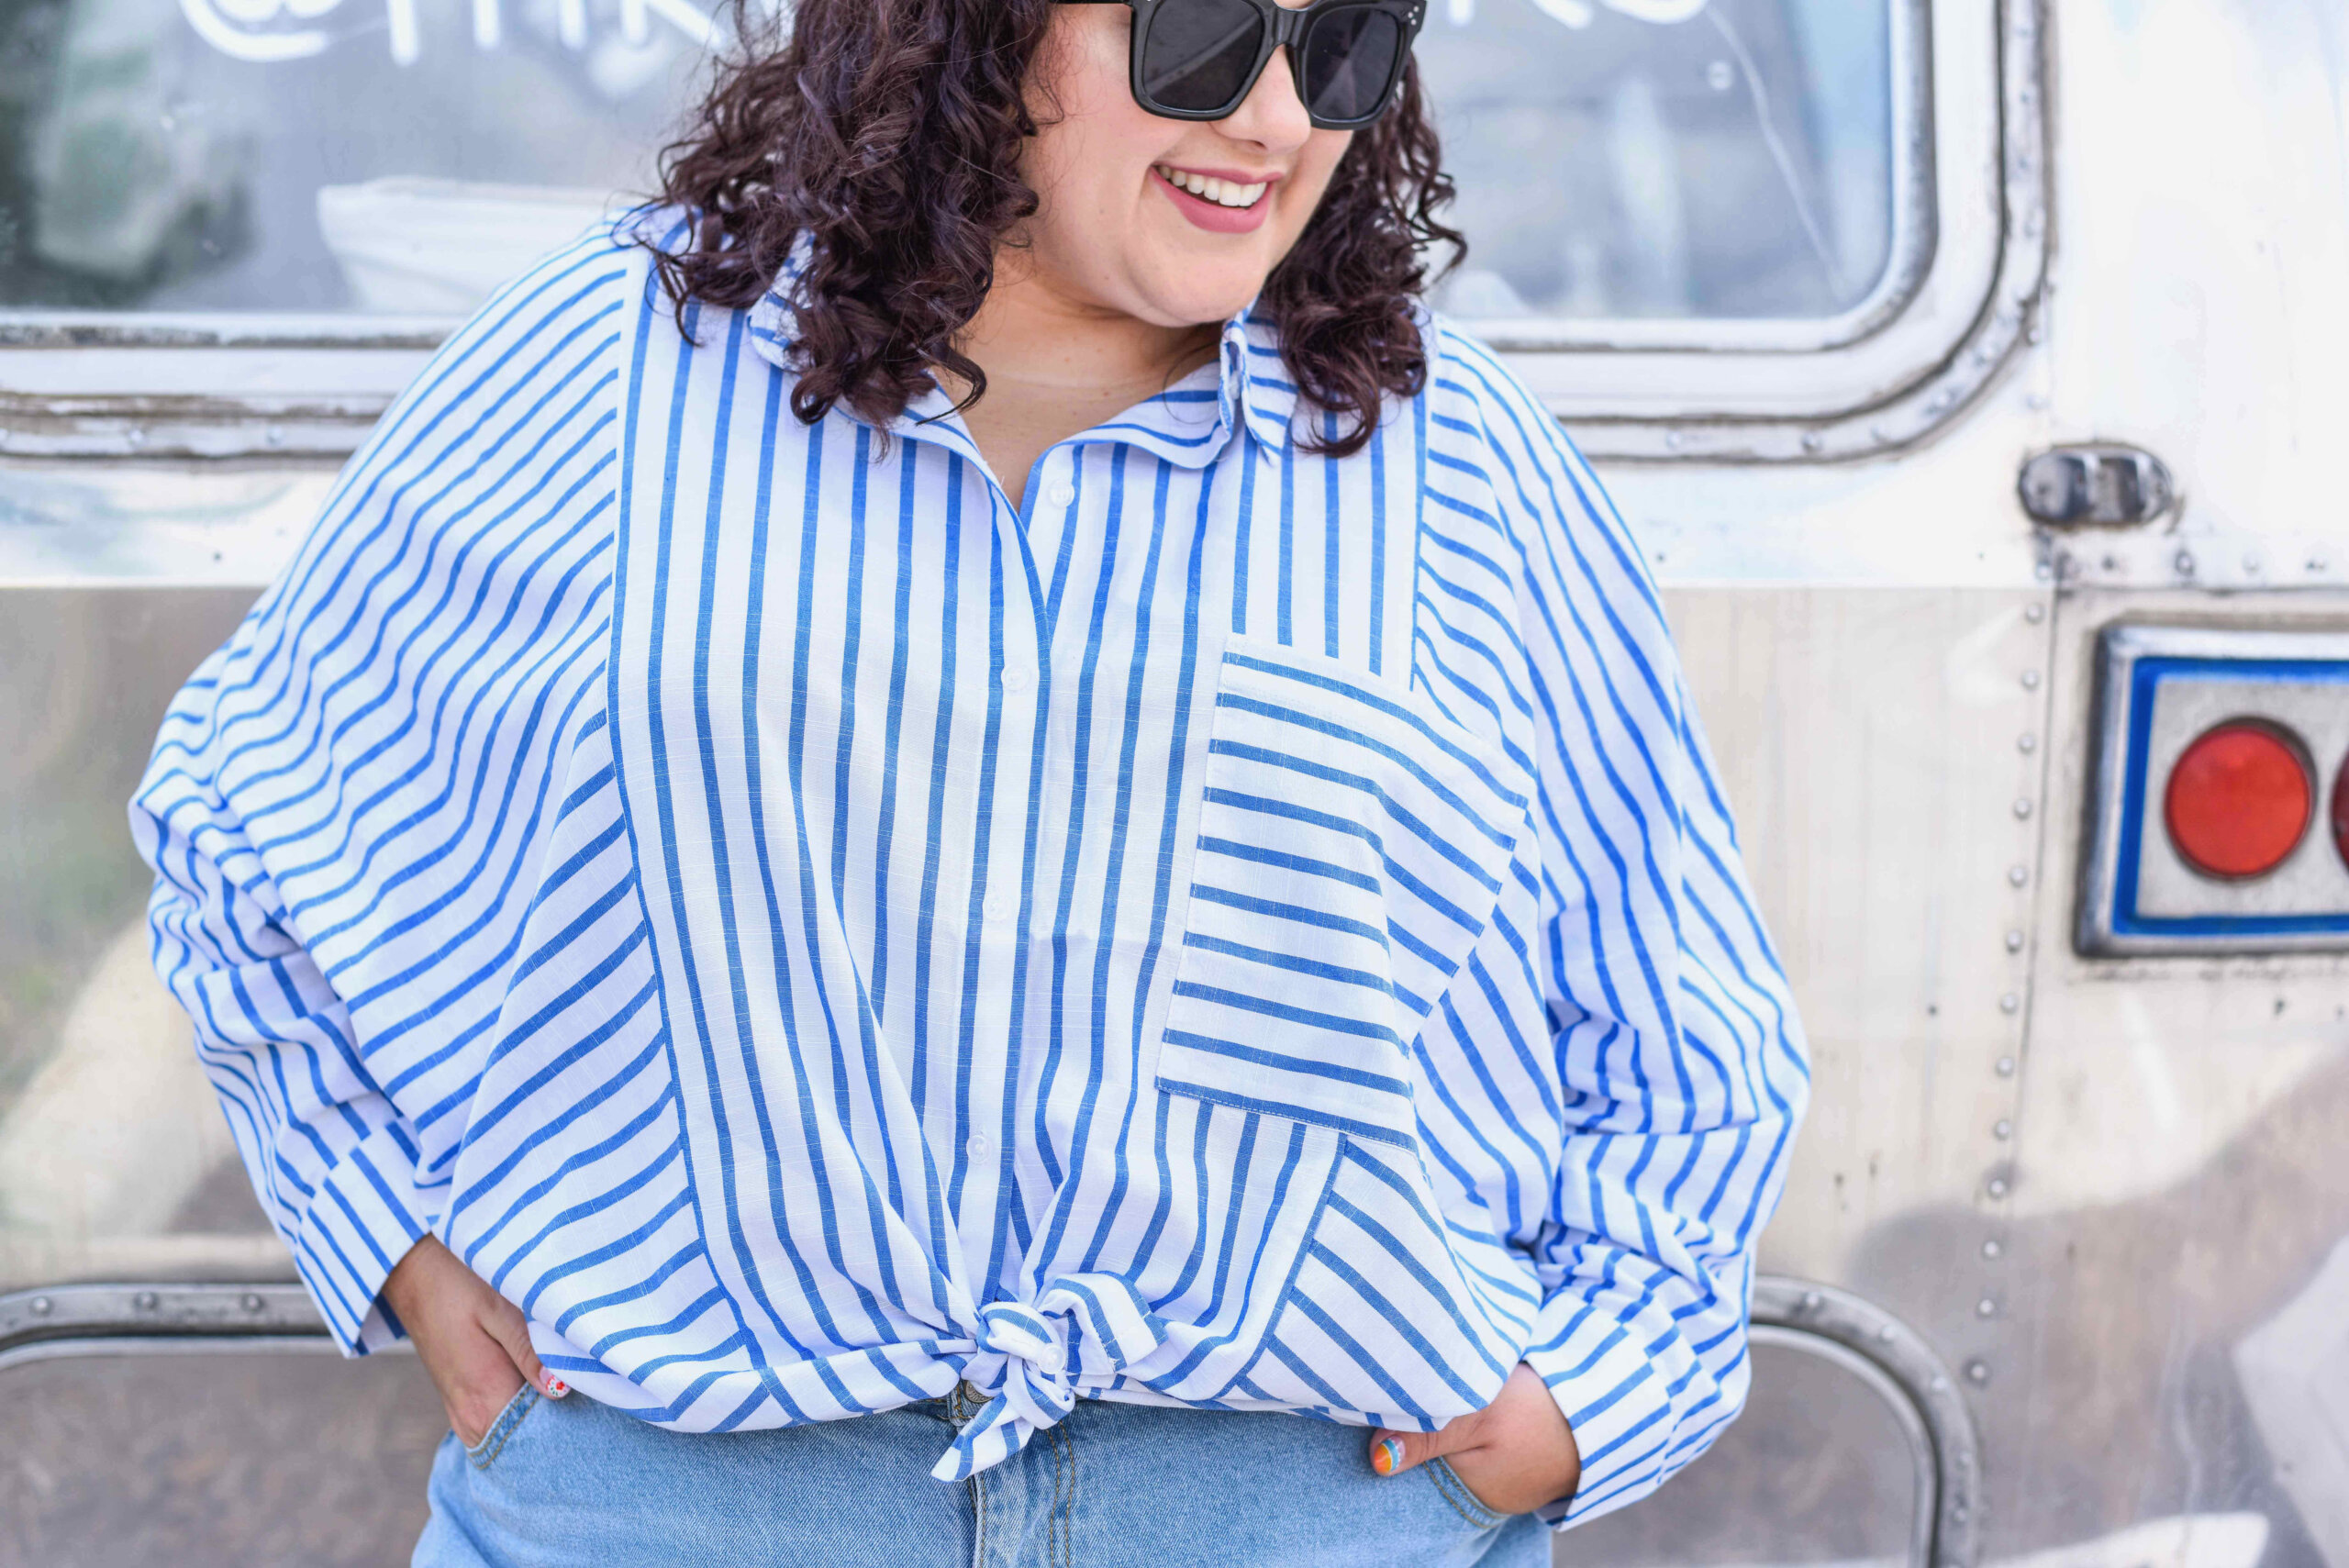 How to style striped shirt plus size